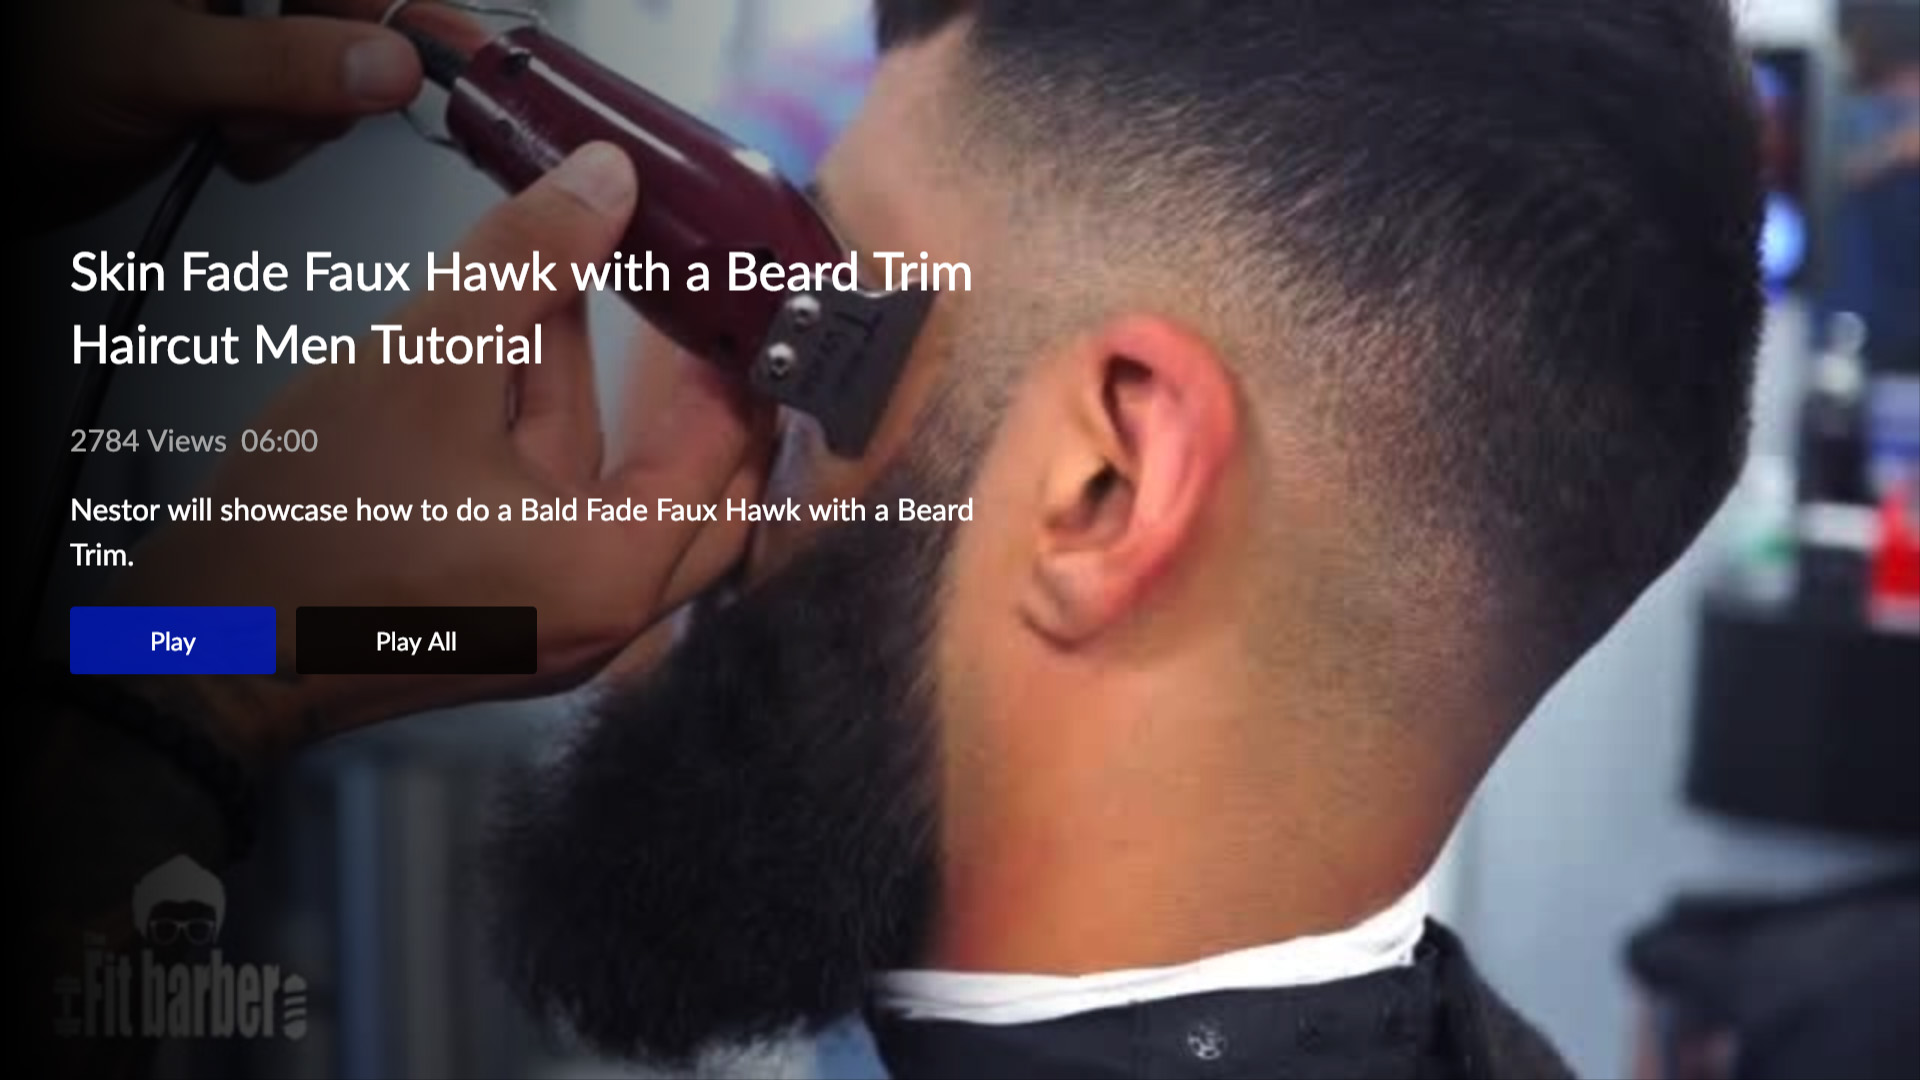 The Barbers Network Screenshot 003